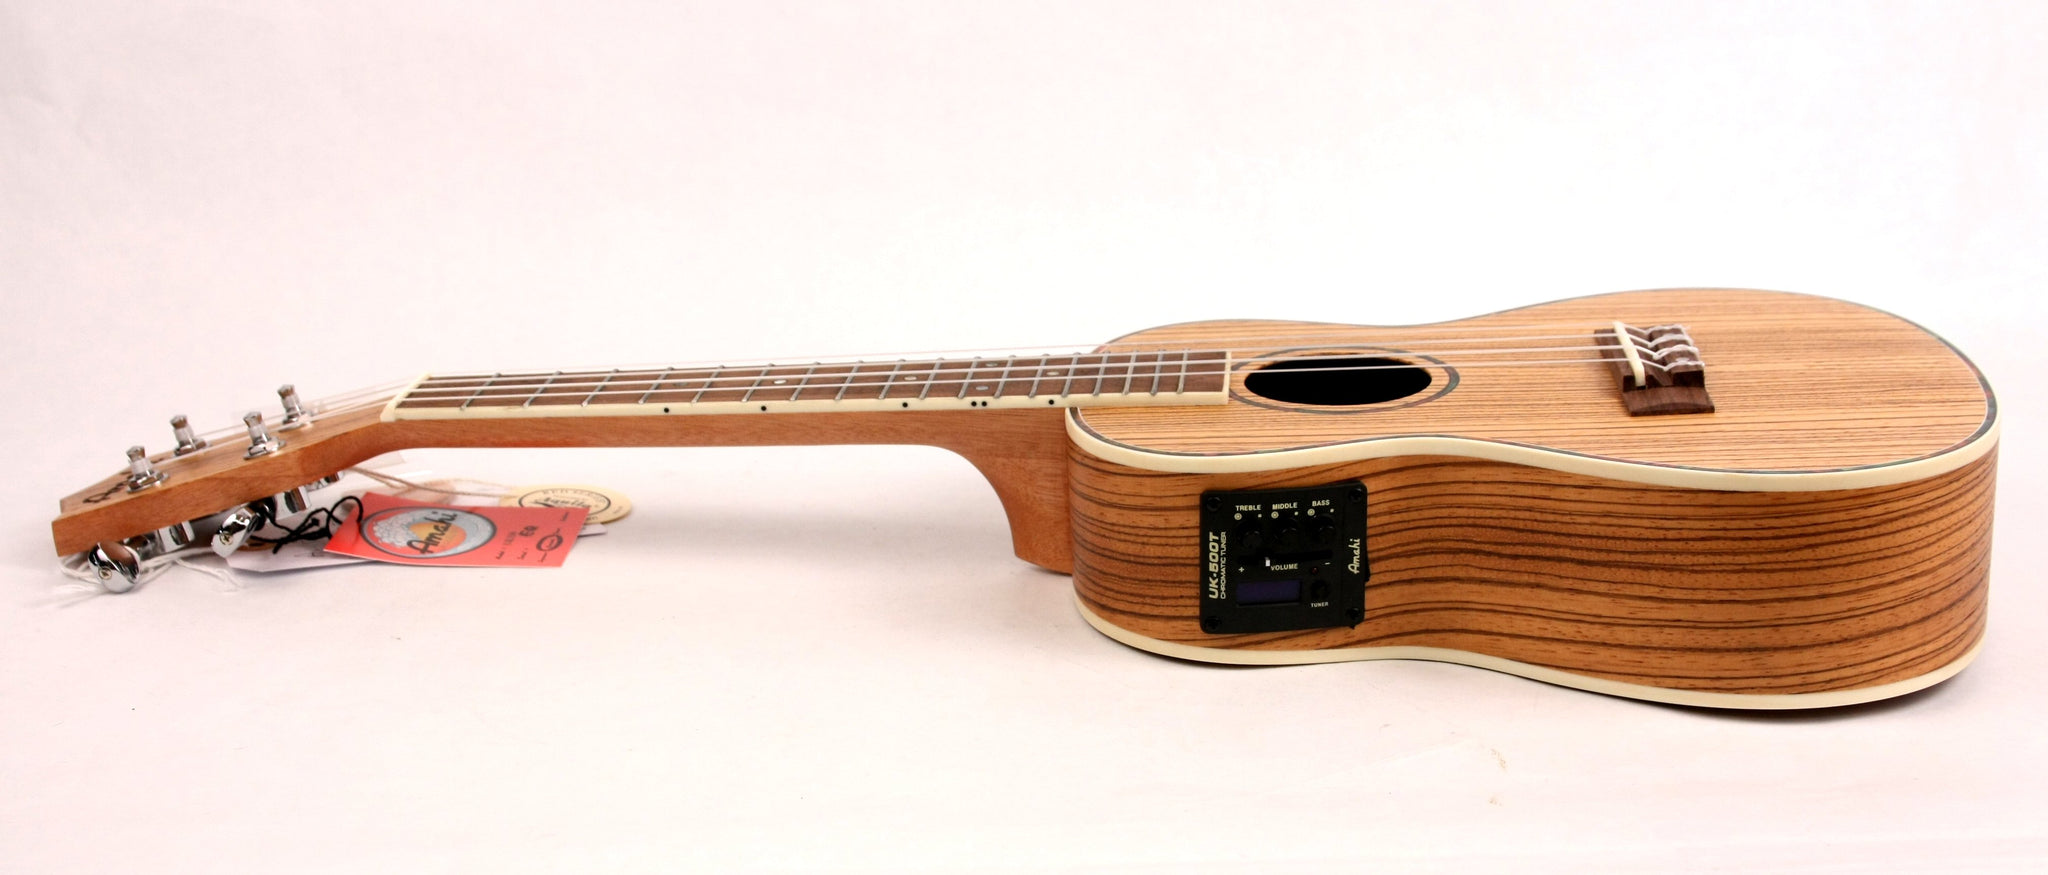 Amahi UK-330-C-EQ Acoustic/Electric Concert Ukulele Uke Zebrawood NEW w/ Gig Bag FREE SHIPPING